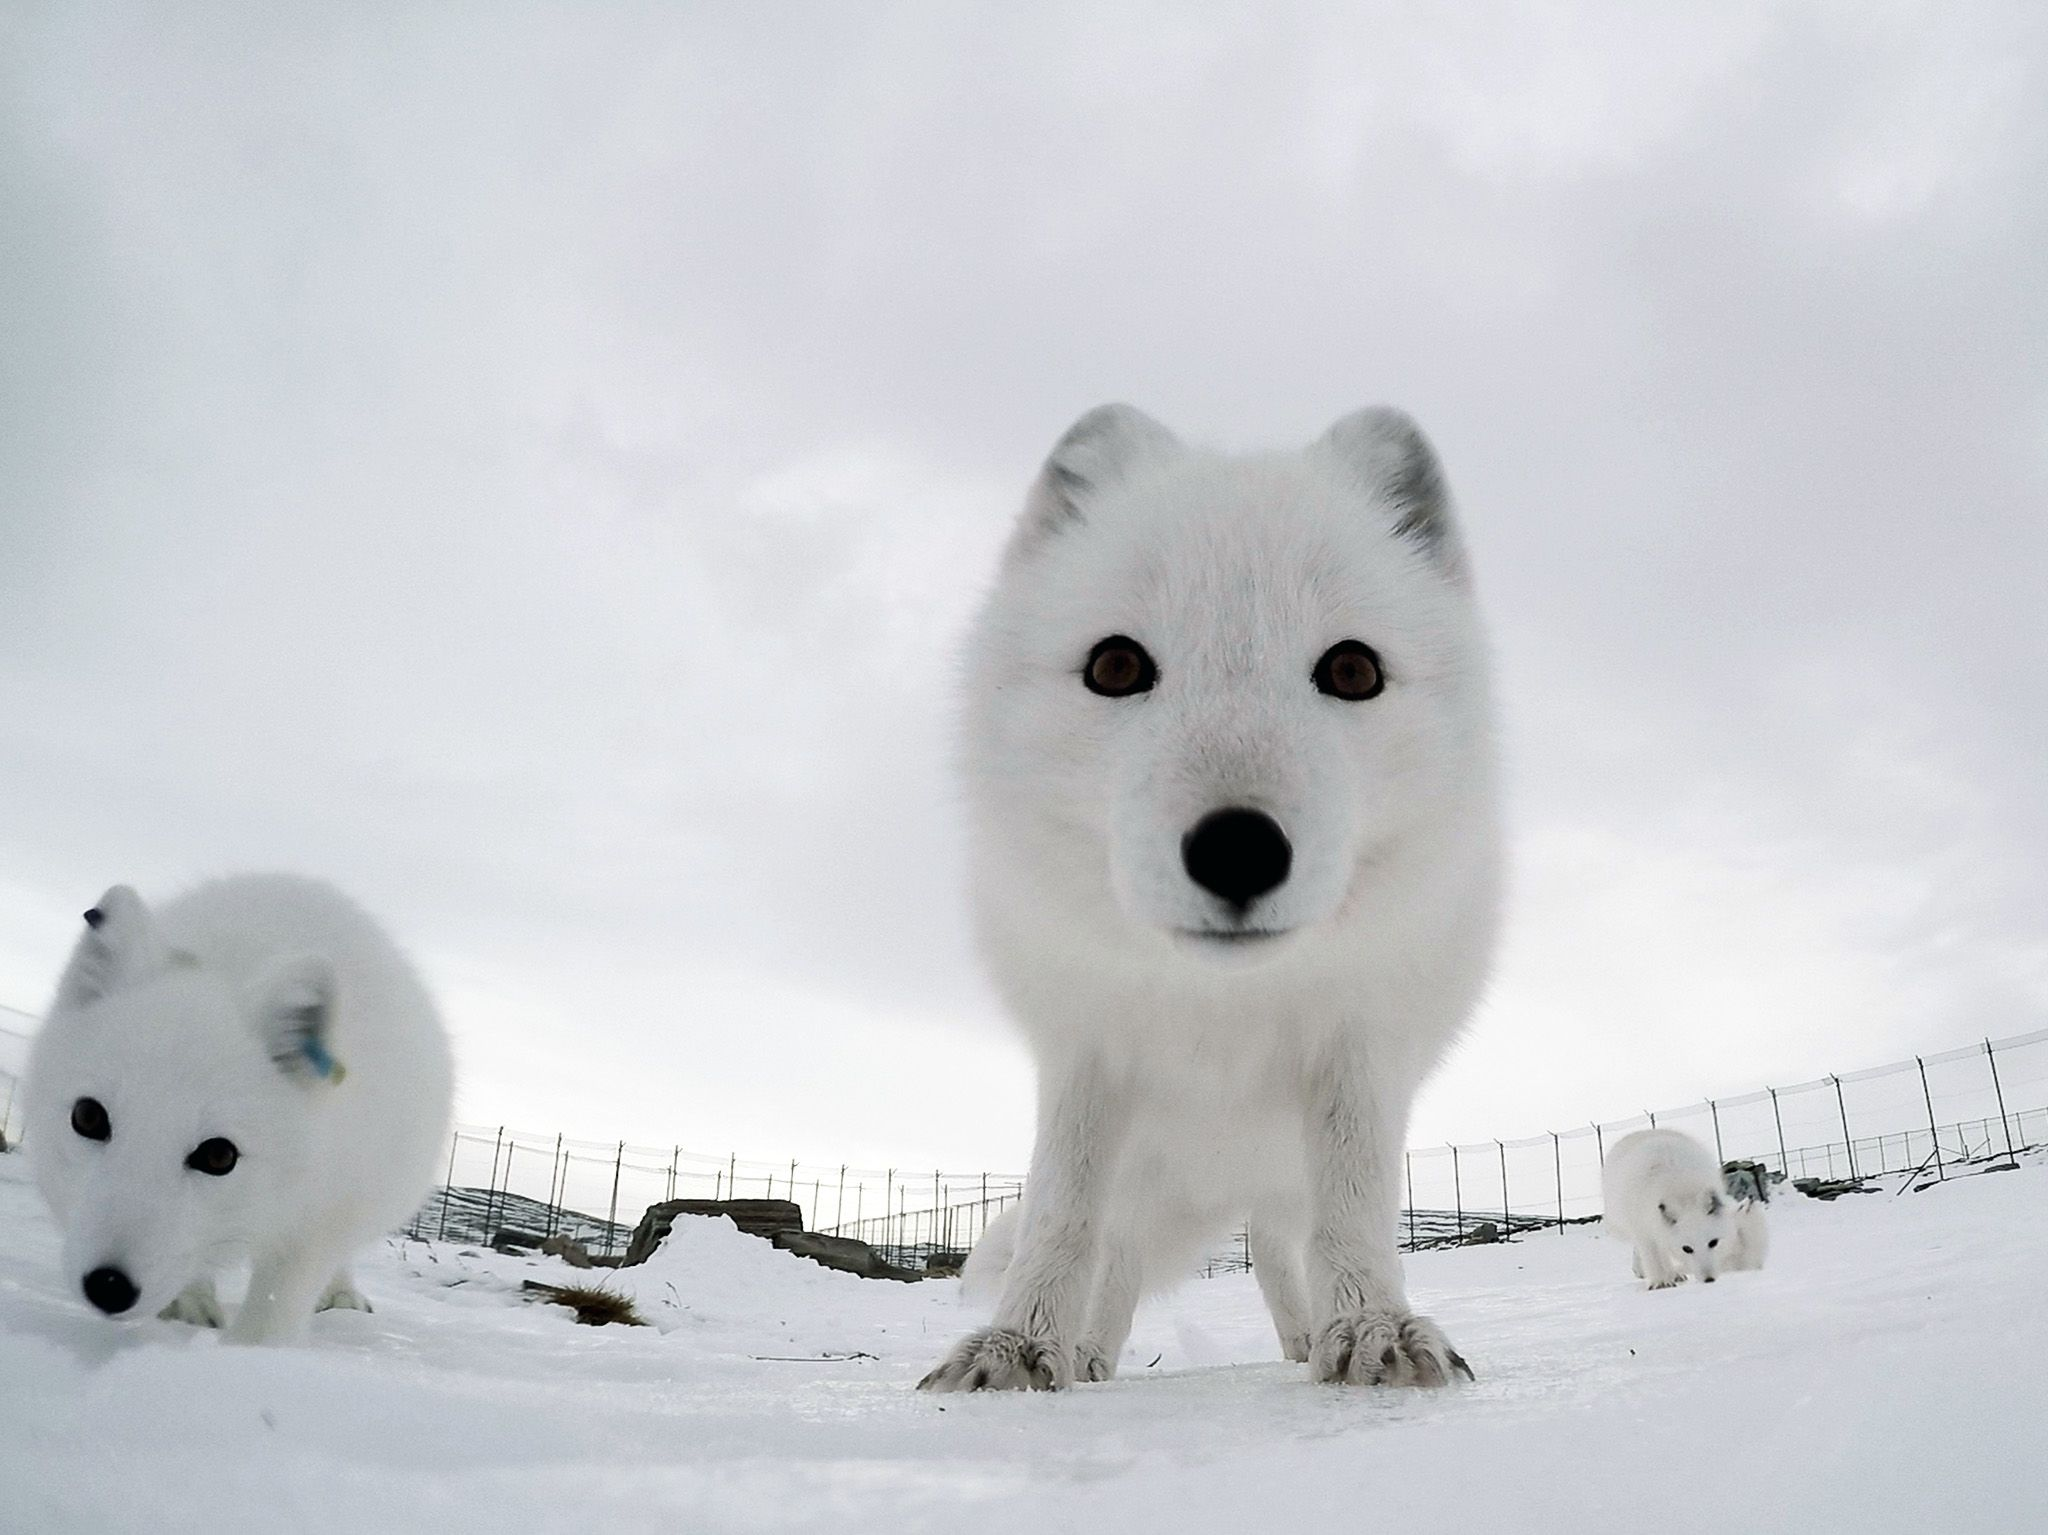 GoPro view of arctic fox in enclosure looking directly at camera. This image is from Wild... [Photo of the day - July 2020]